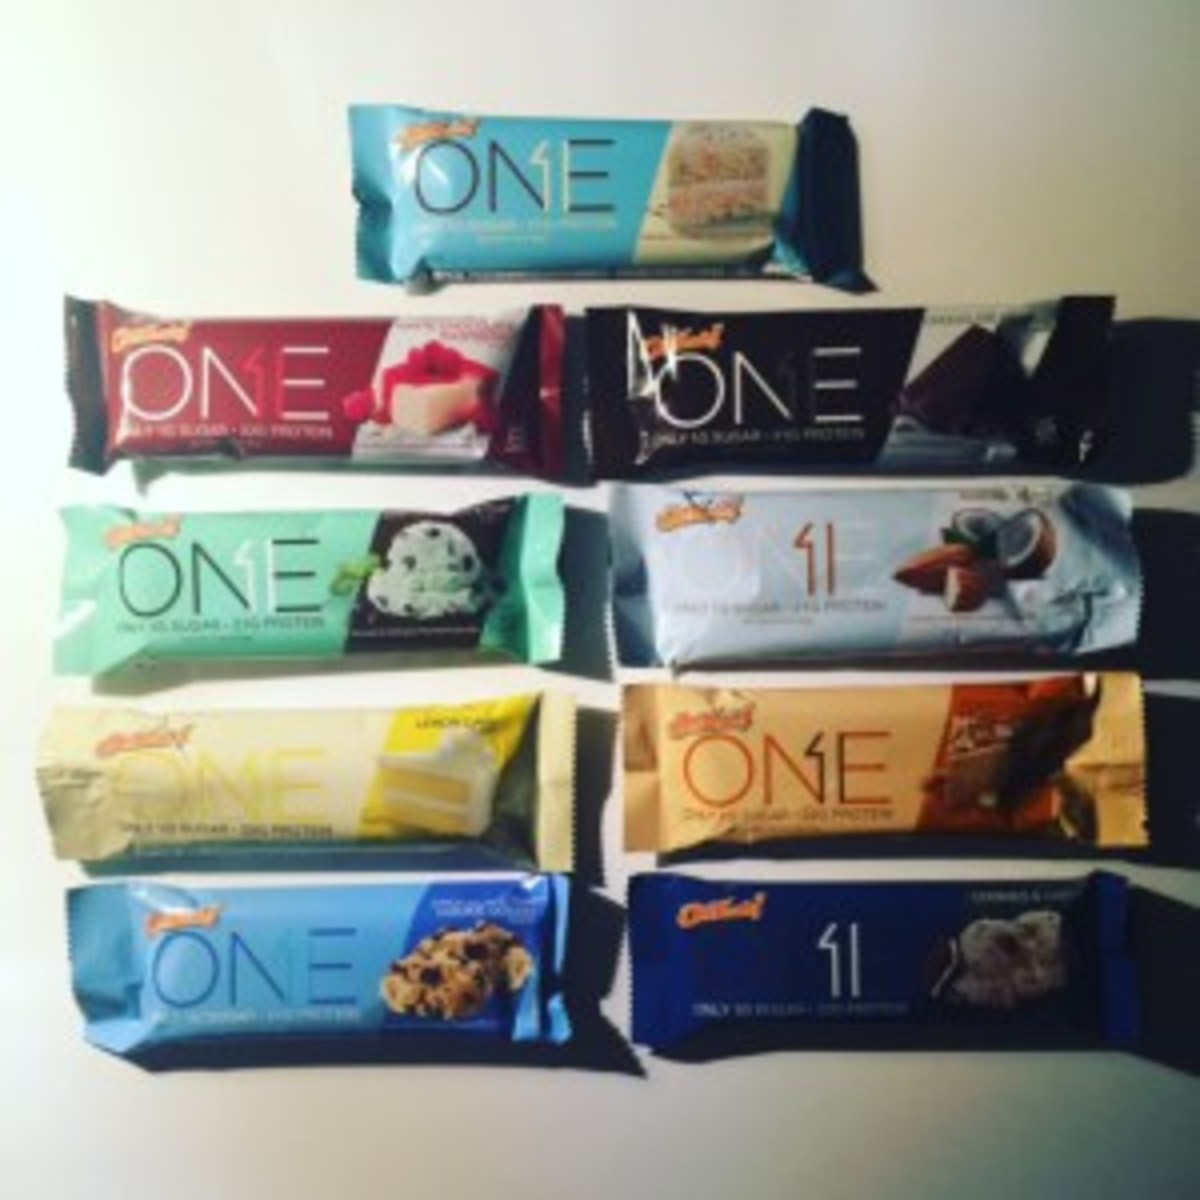 9 of the 11 OhYeah! ONE Bar flavors.